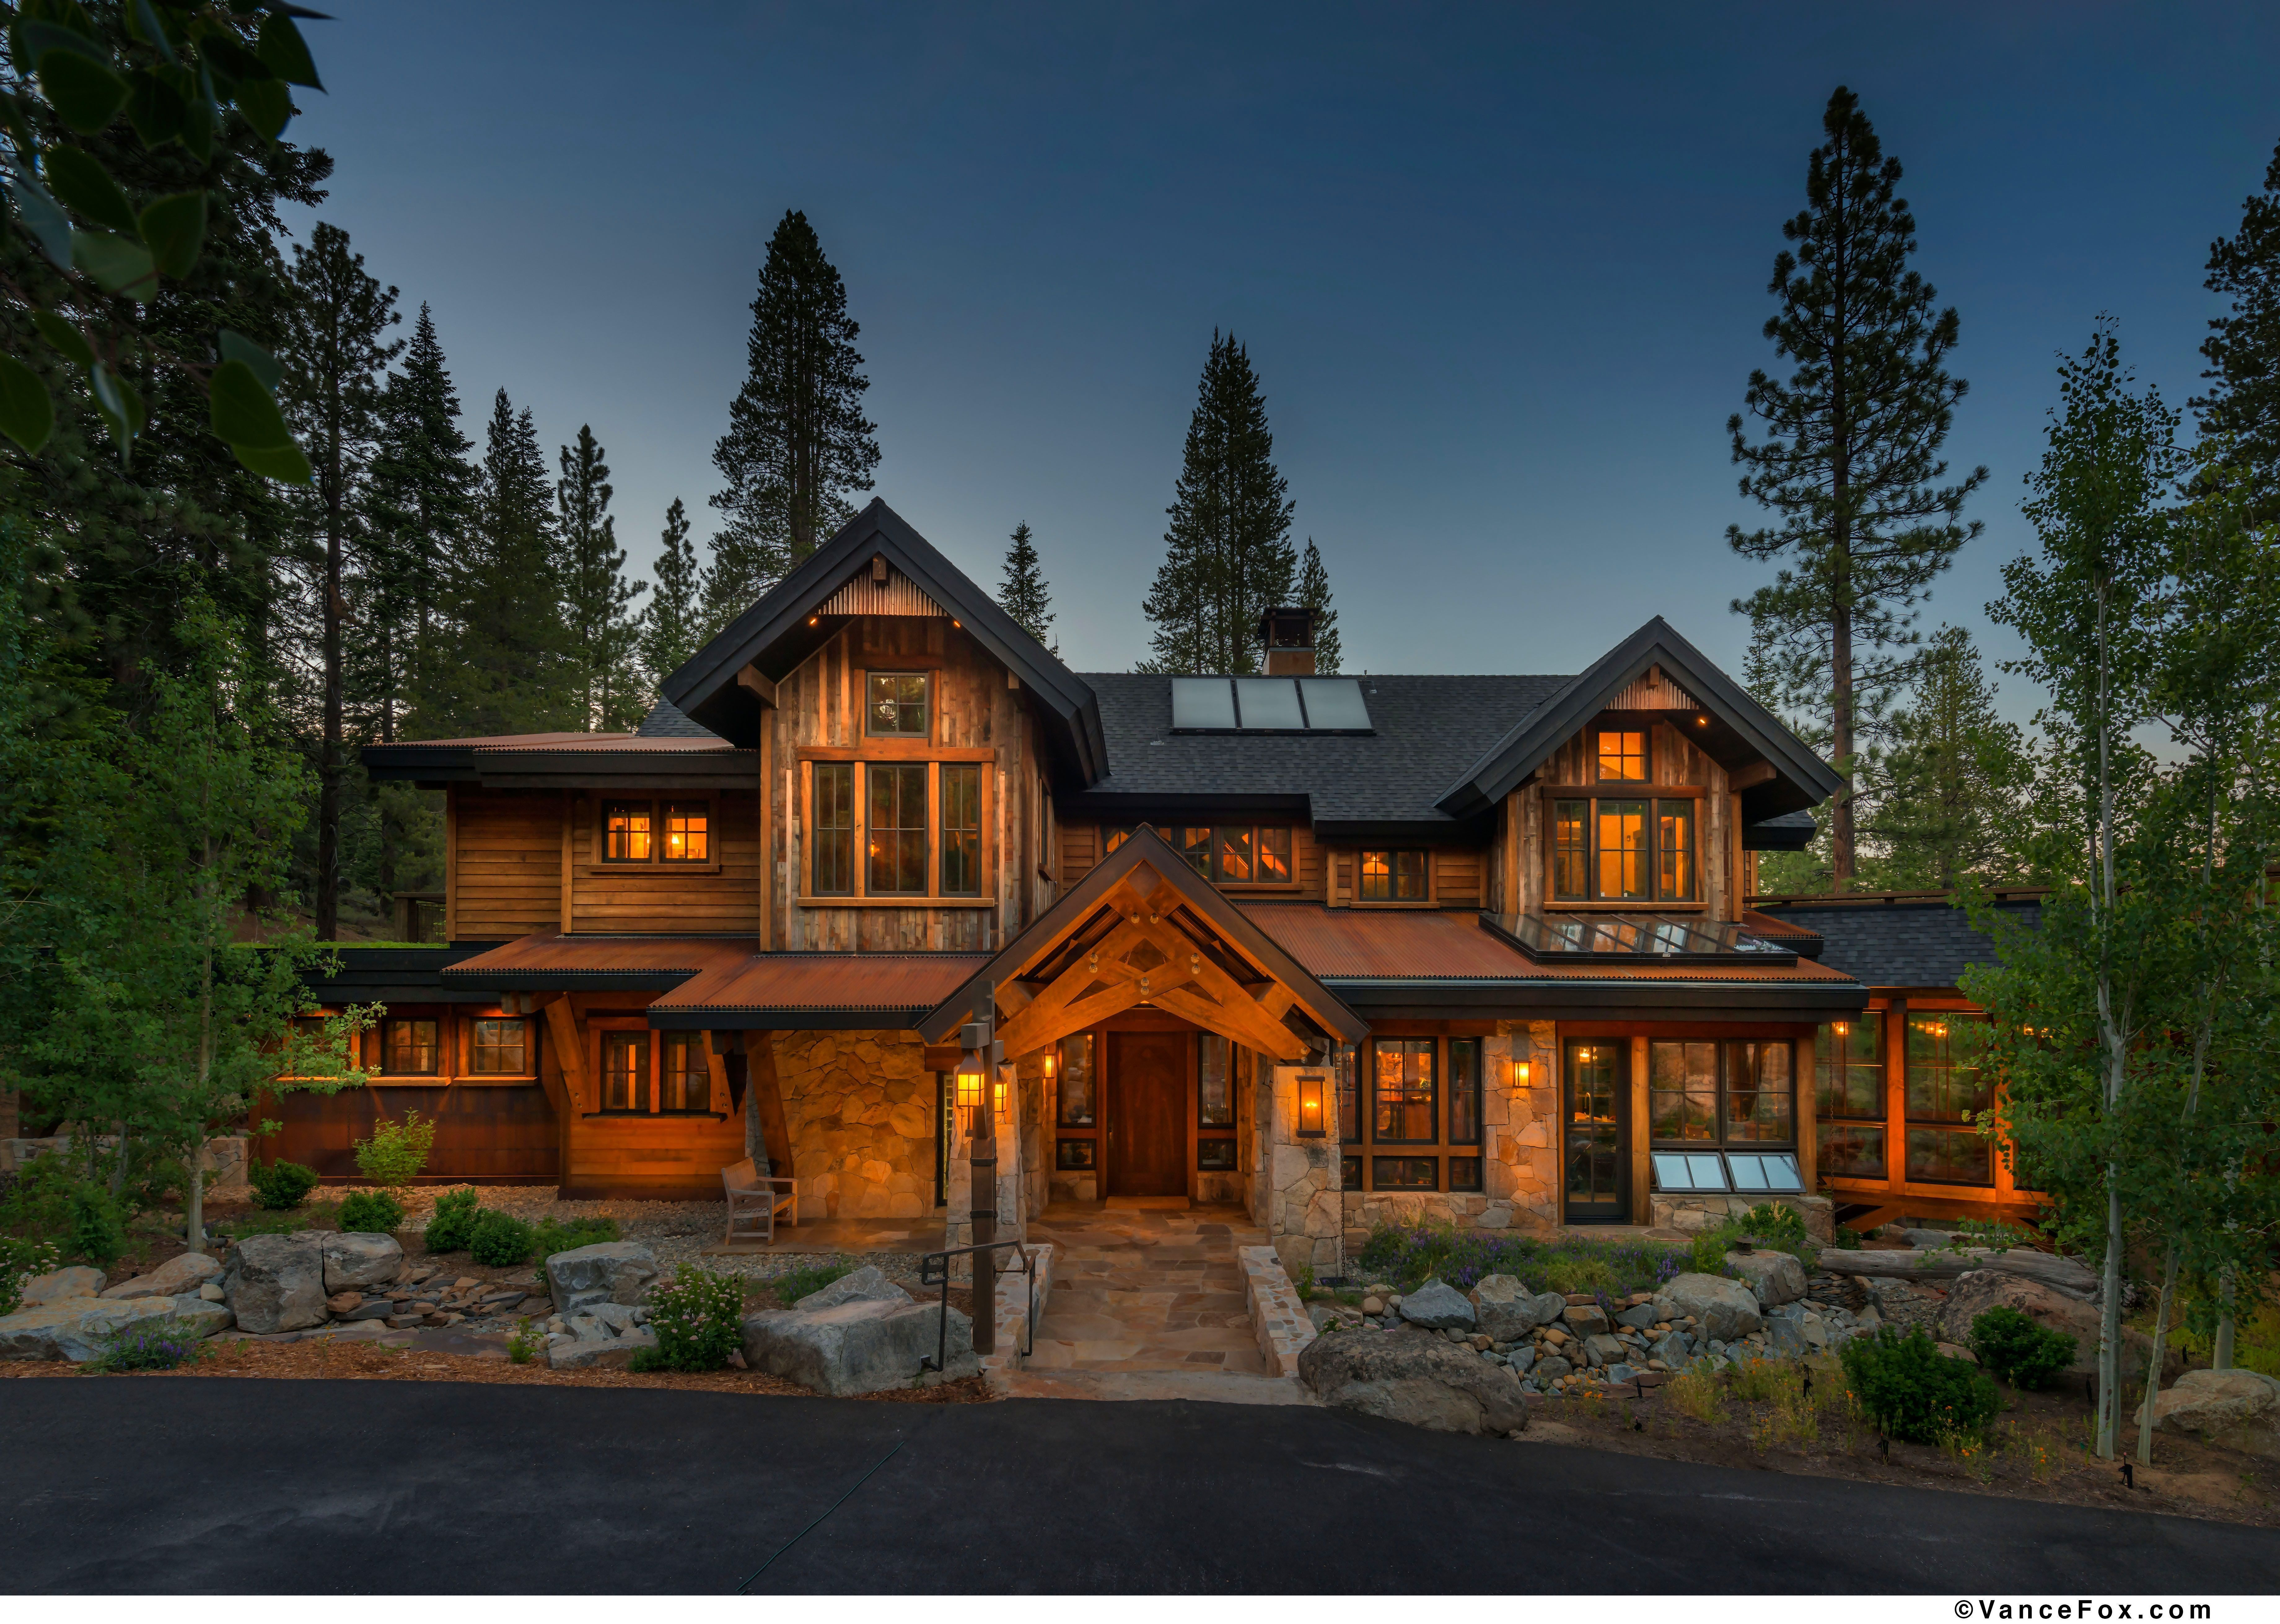 Ideas Modern Rustic Mountain Home Design Features Chic Wood And Stone House With Black Siding Roof And Awesome Fron House Styles Courtyard Design House Design